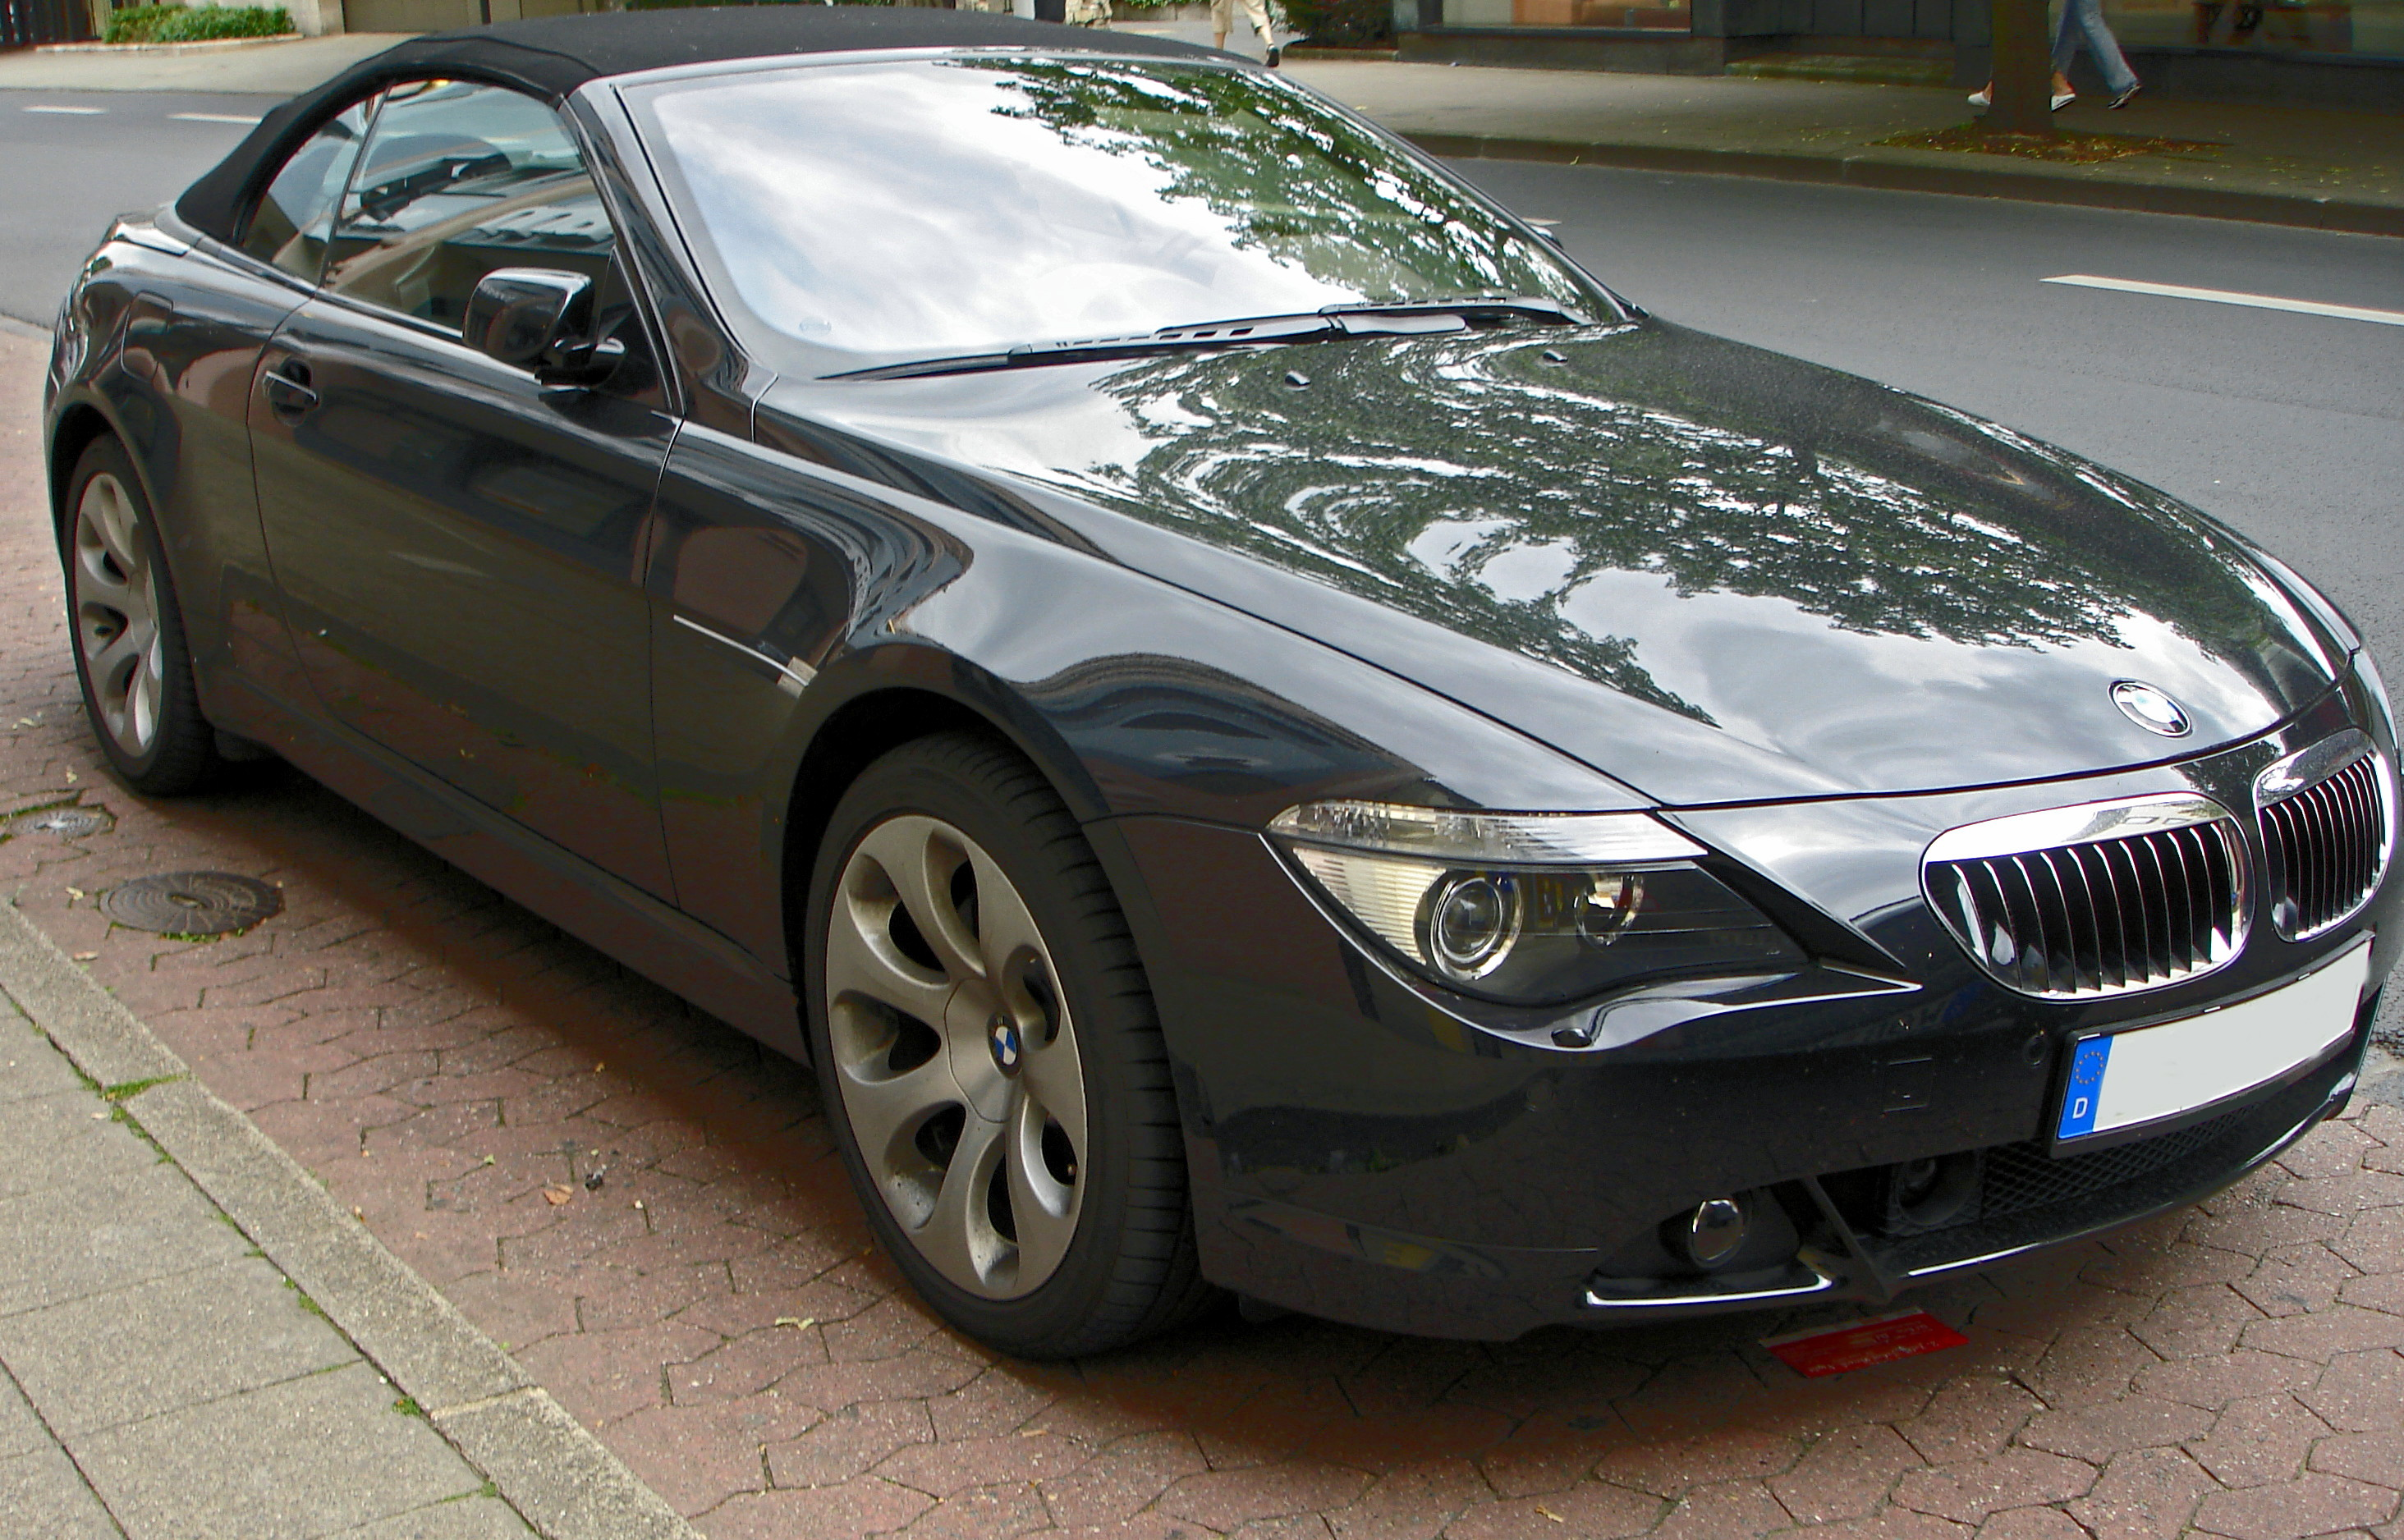 http://upload.wikimedia.org/wikipedia/commons/4/49/BMW_645_E64_front.jpg